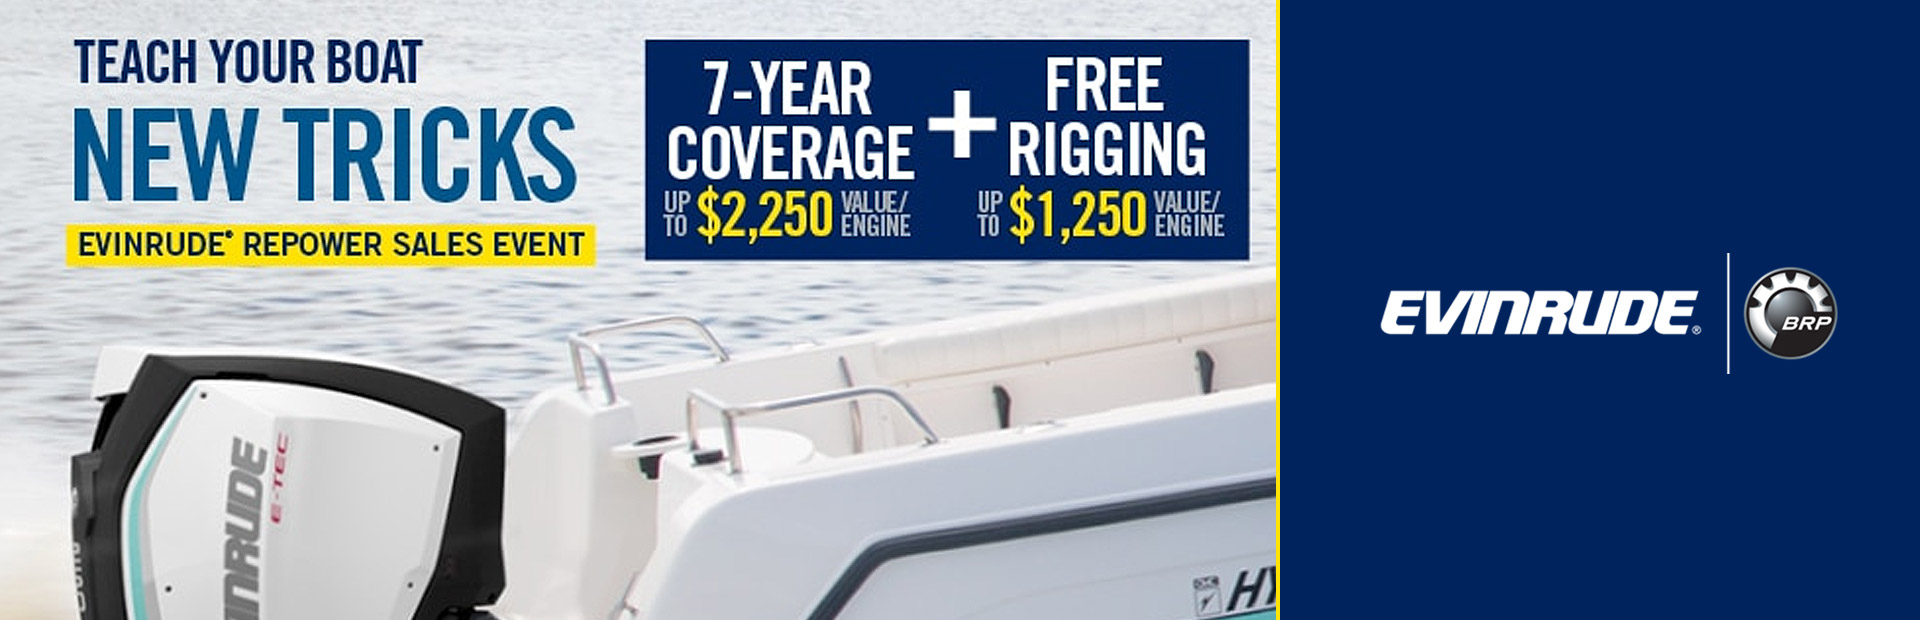 Evinrude® Repower Sales Event